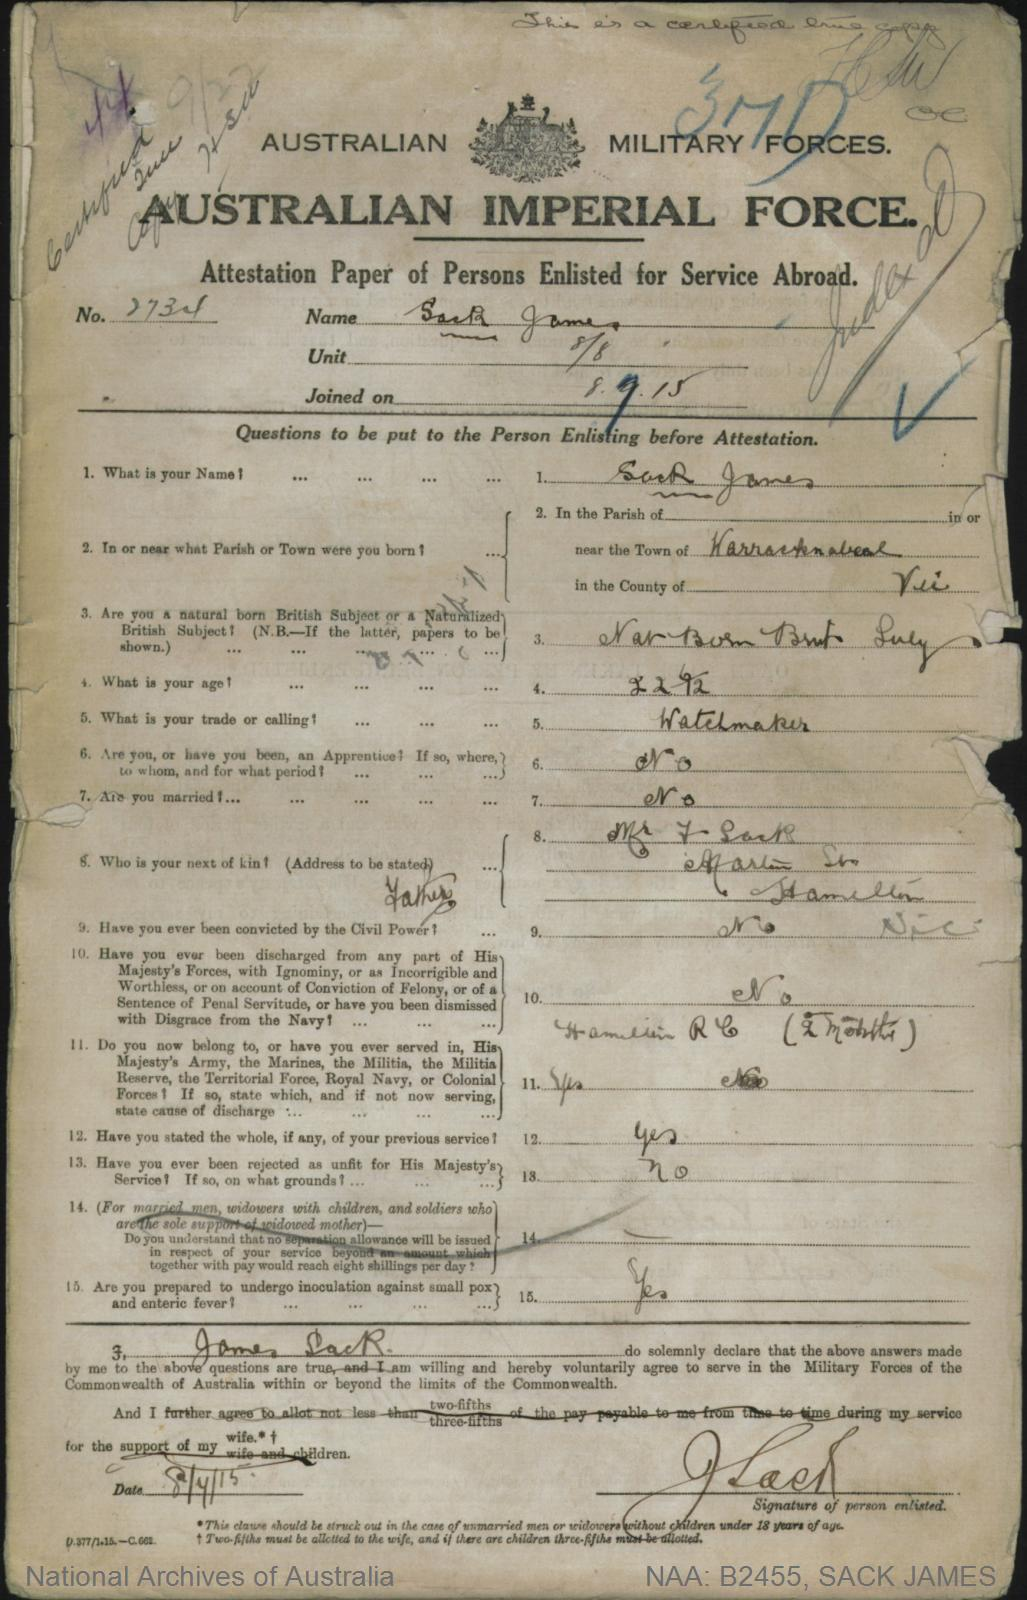 SACK James : Service Number - 2734 : Place of Birth - Warracknabeal VIC : Place of Enlistment - Melbourne VIC : Next of Kin - (Father) SACK F